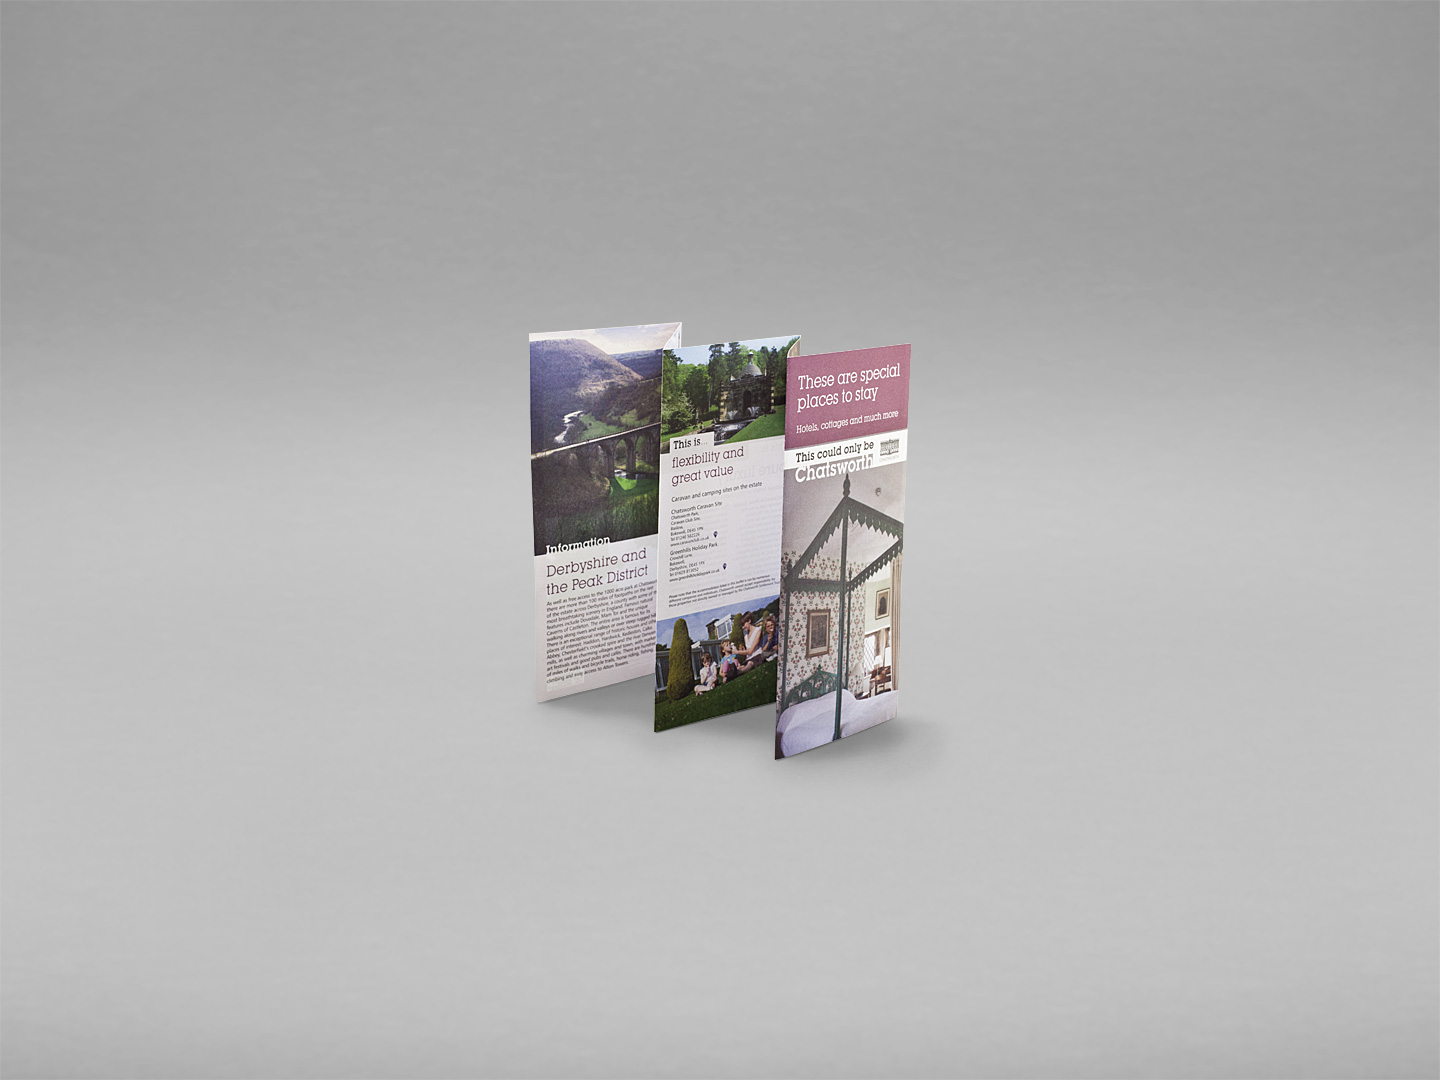 chatsworth house, holiday accomodation, leaflet, design for print, graphic design, derbyshire, sheffield, chesterfield, manchester, derby